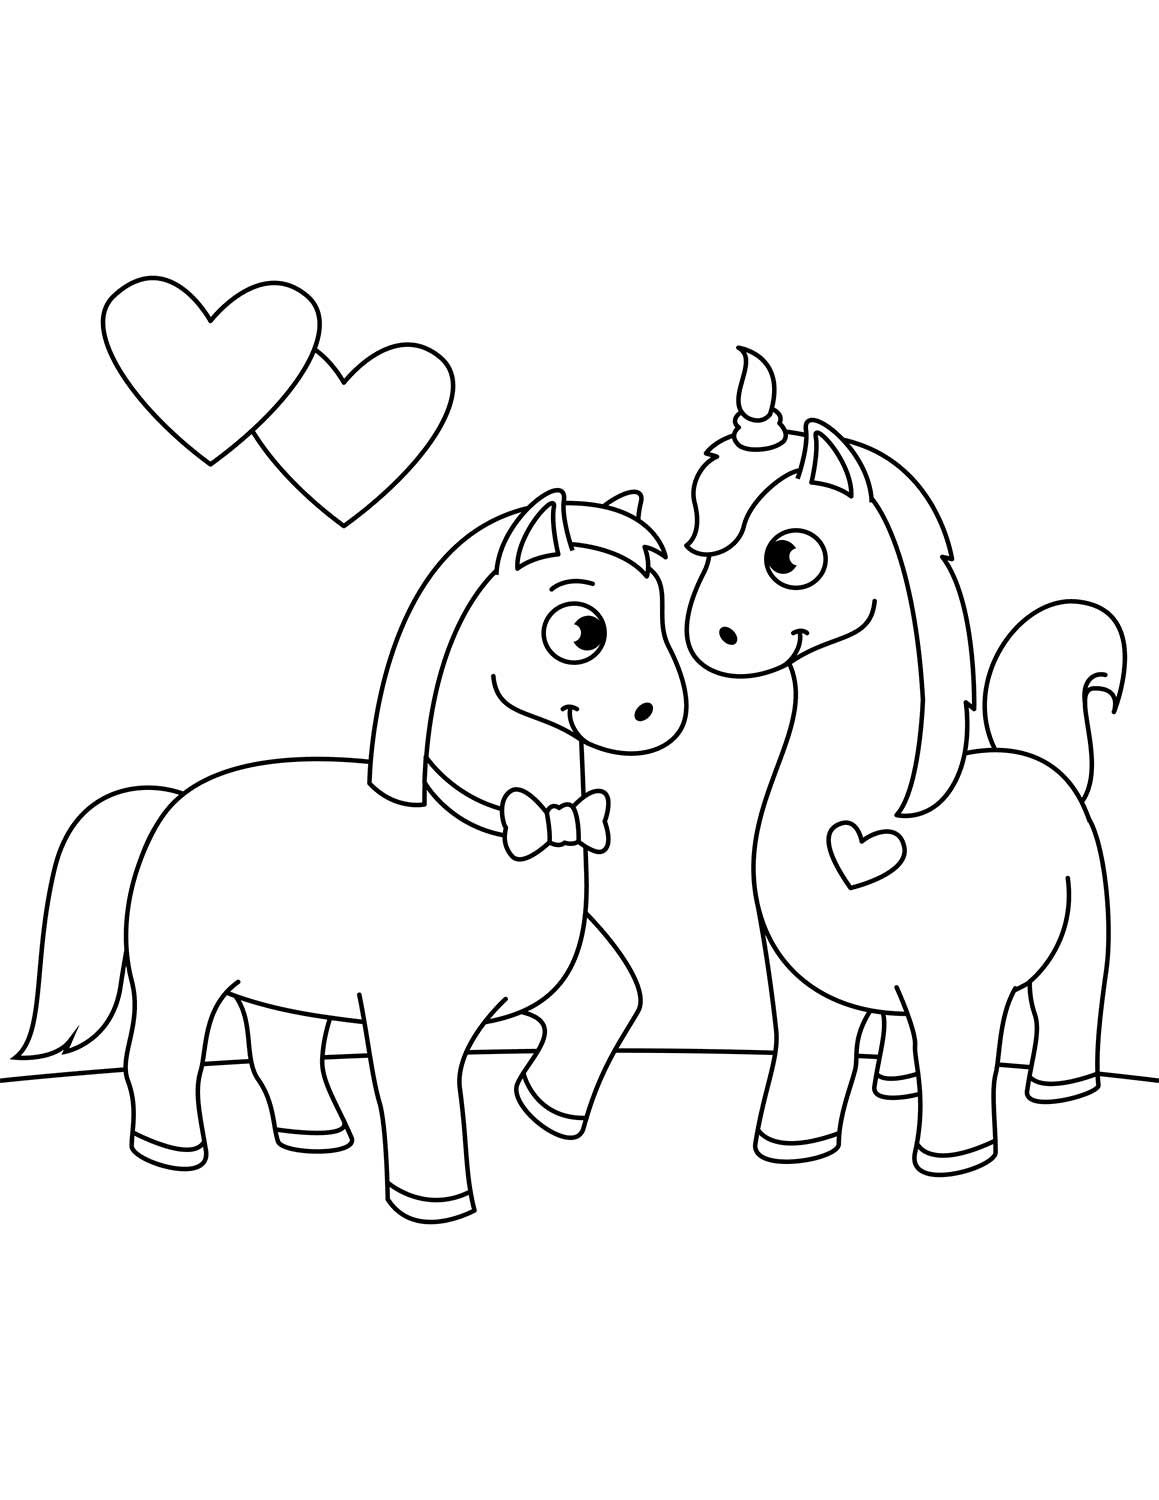 Two Horses In Love Coloring Page Horse Coloring Pages Love Coloring Pages Horse Coloring Books [ 1500 x 1159 Pixel ]